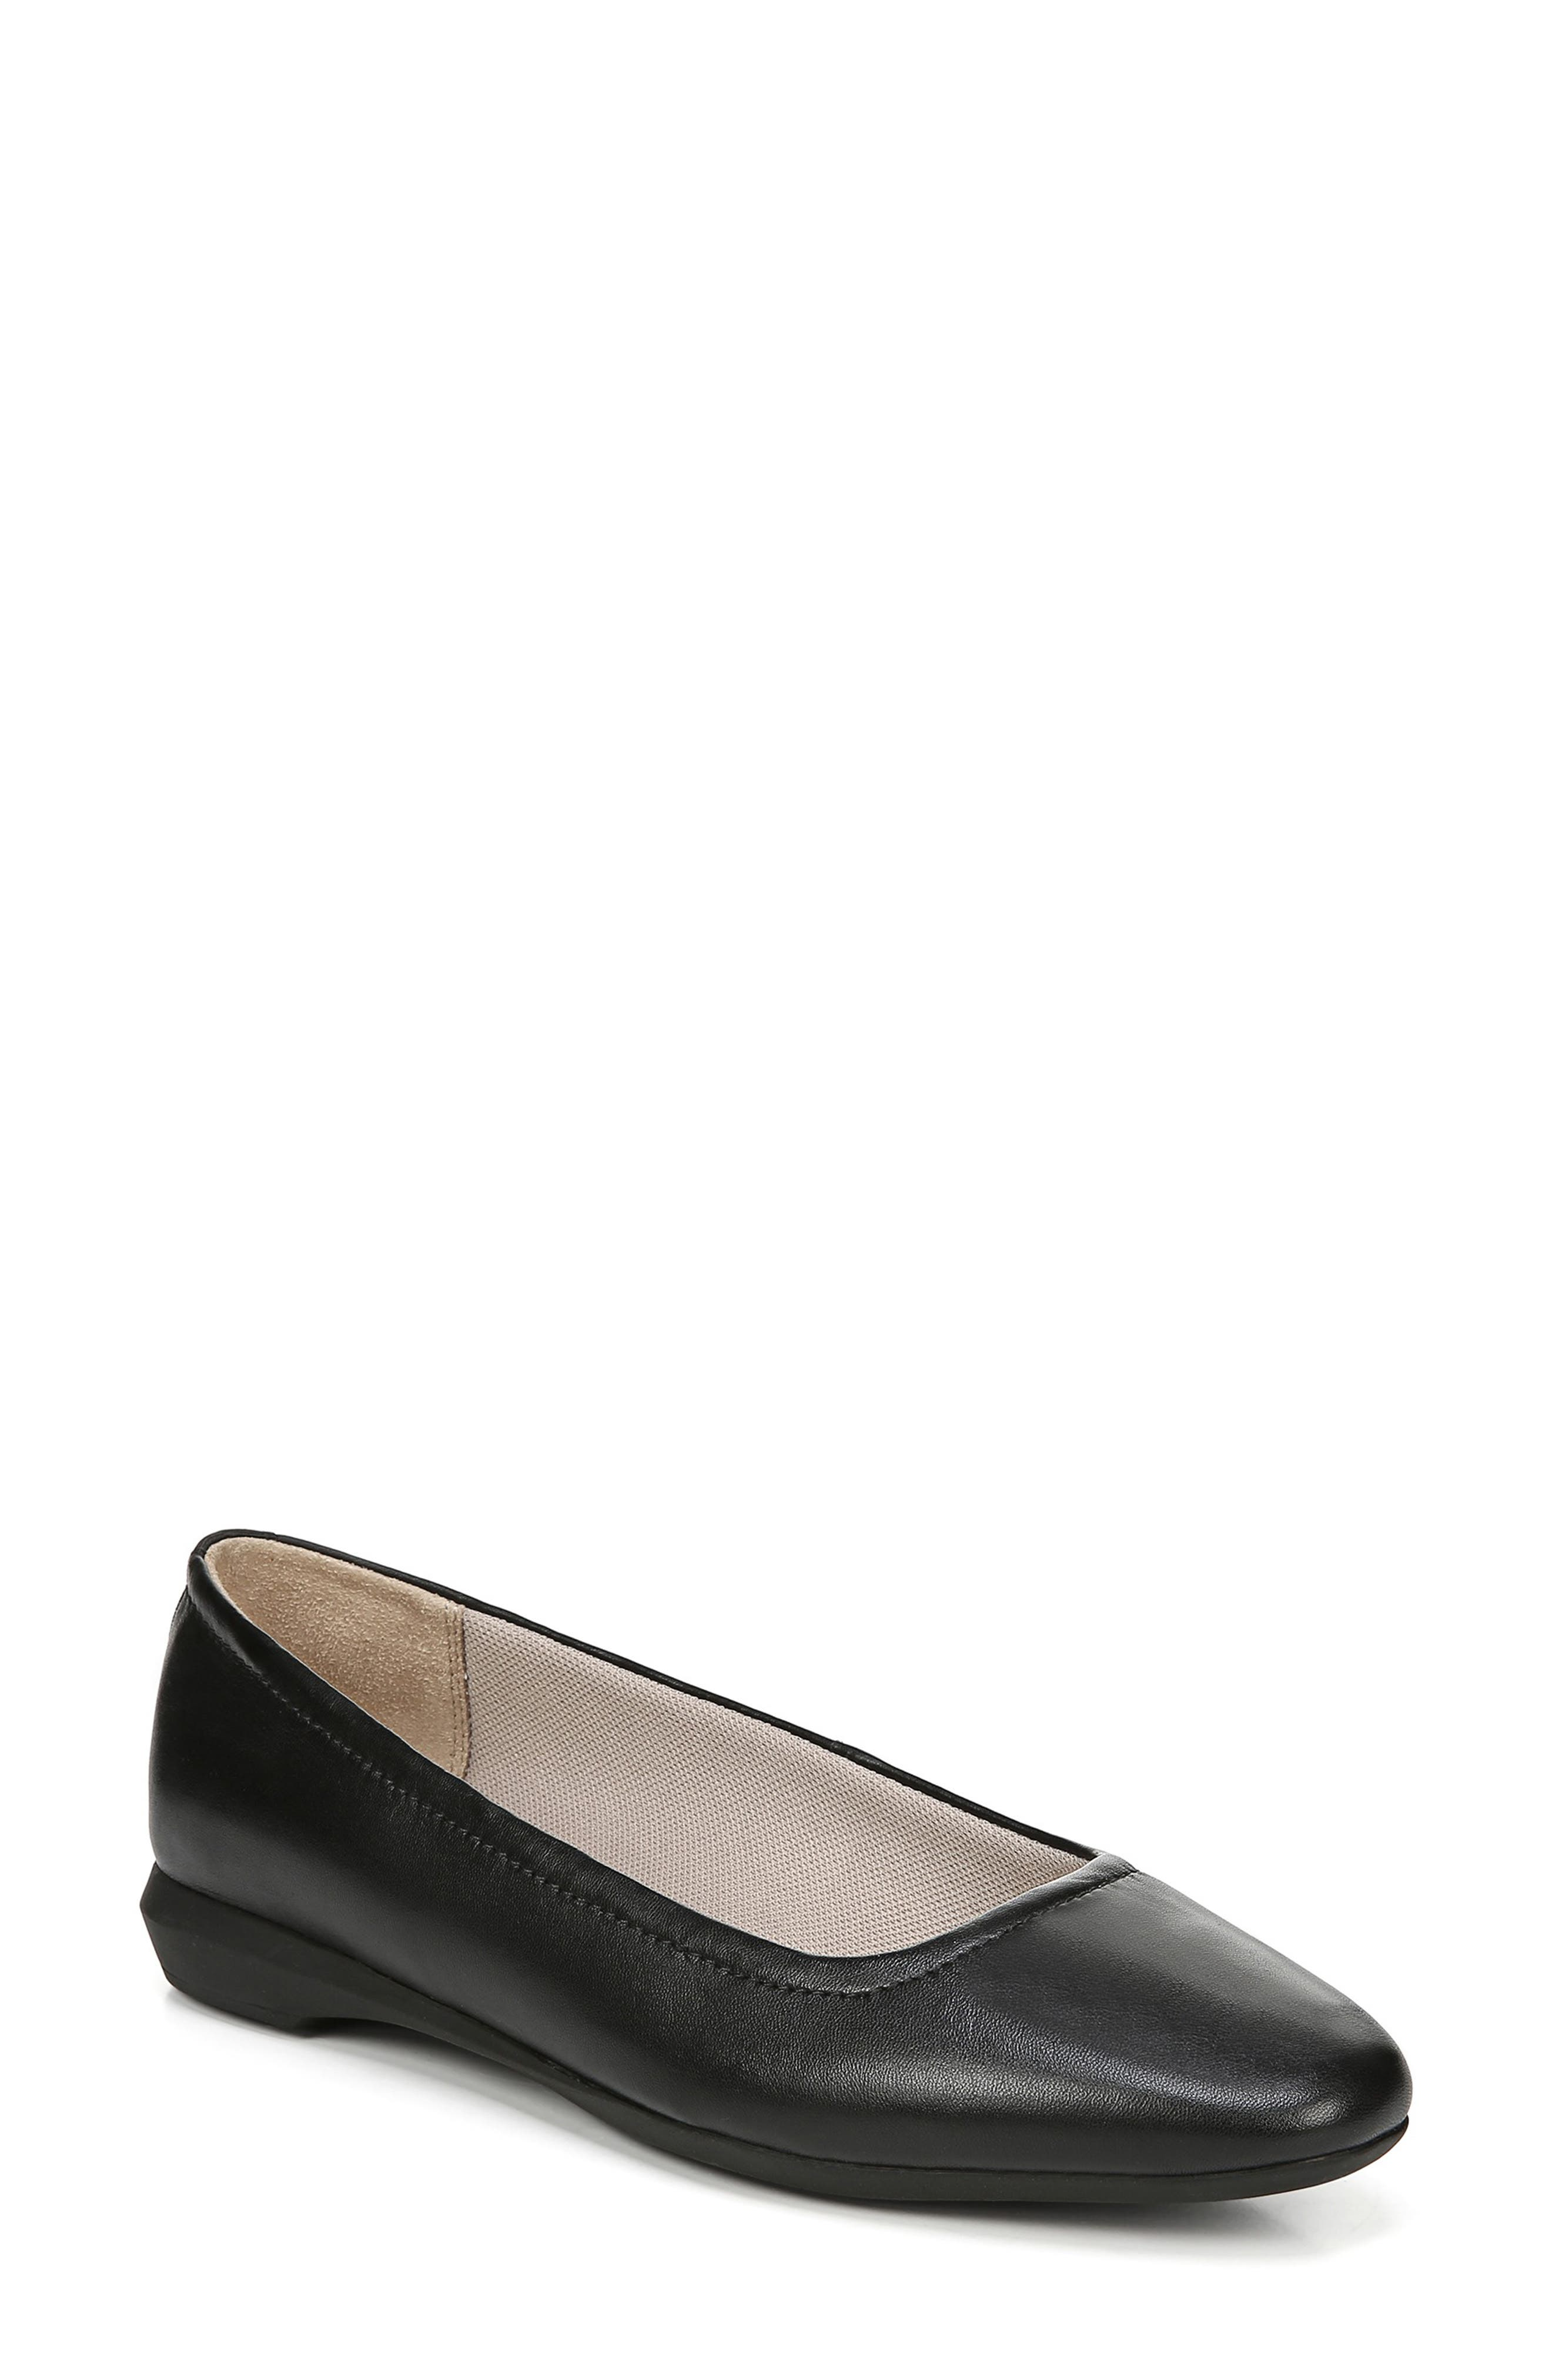 Naturalizer Alya Flat N - Black